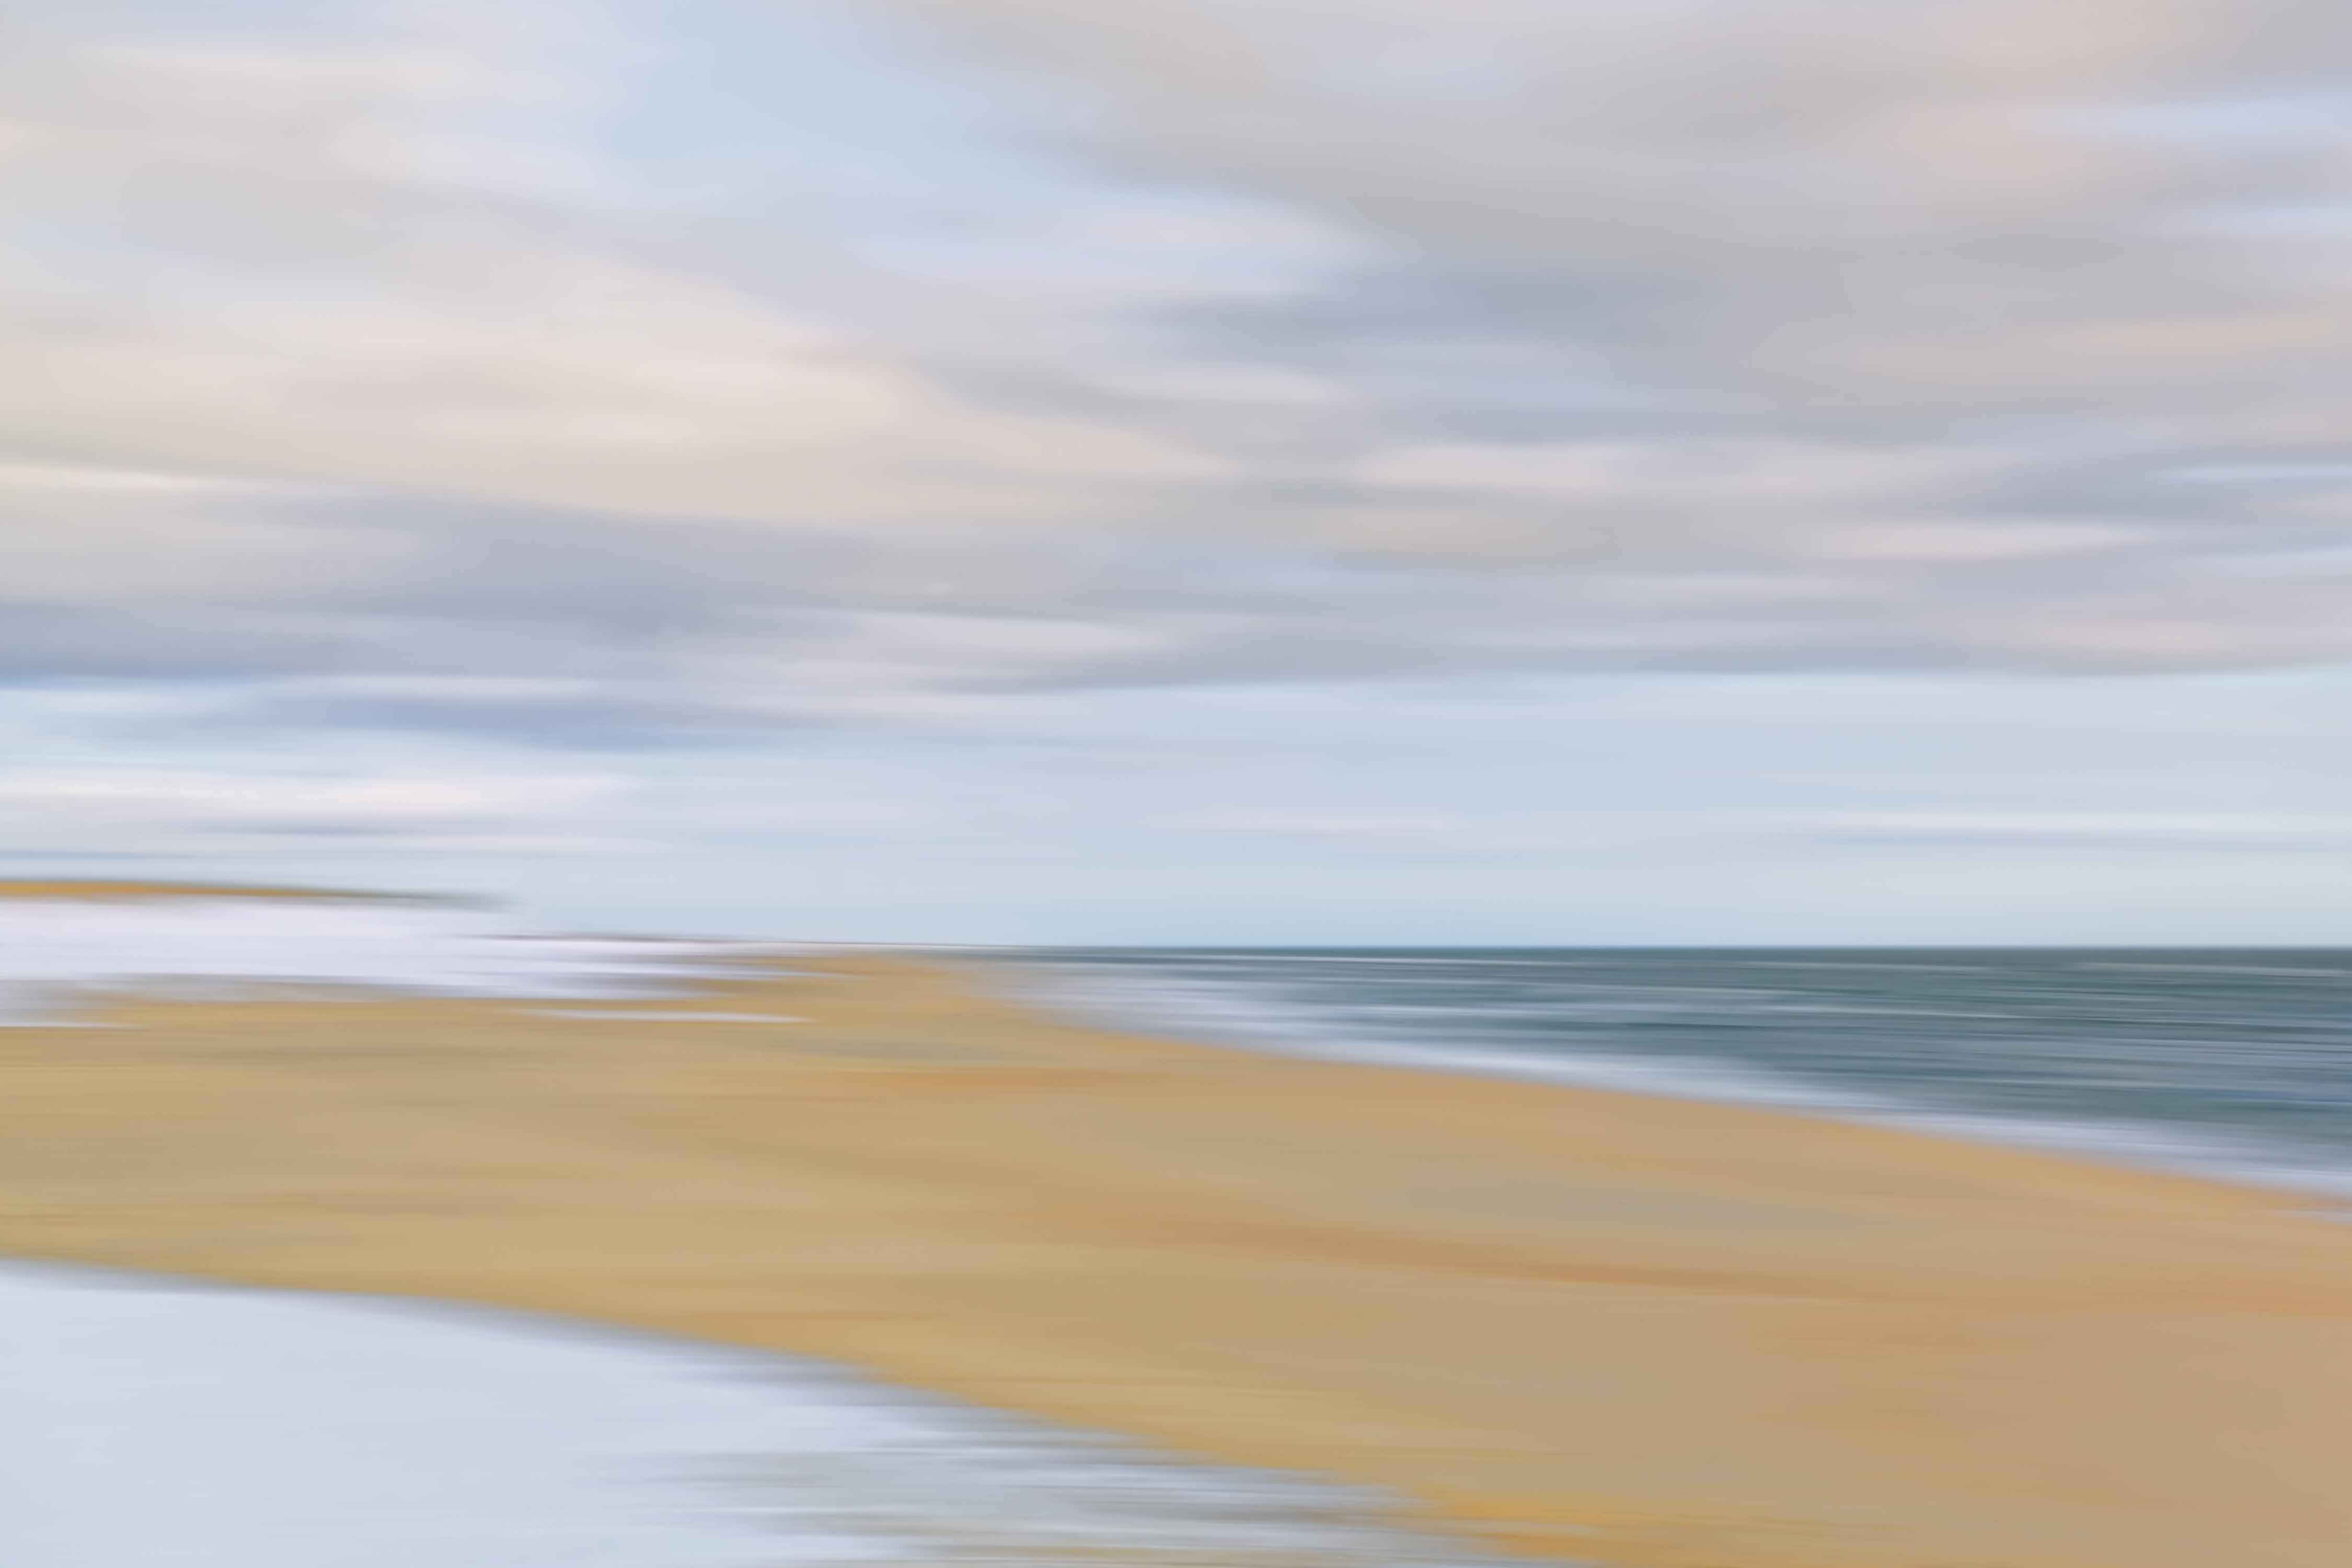 Tranquility by  Michael Stimola - Masterpiece Online